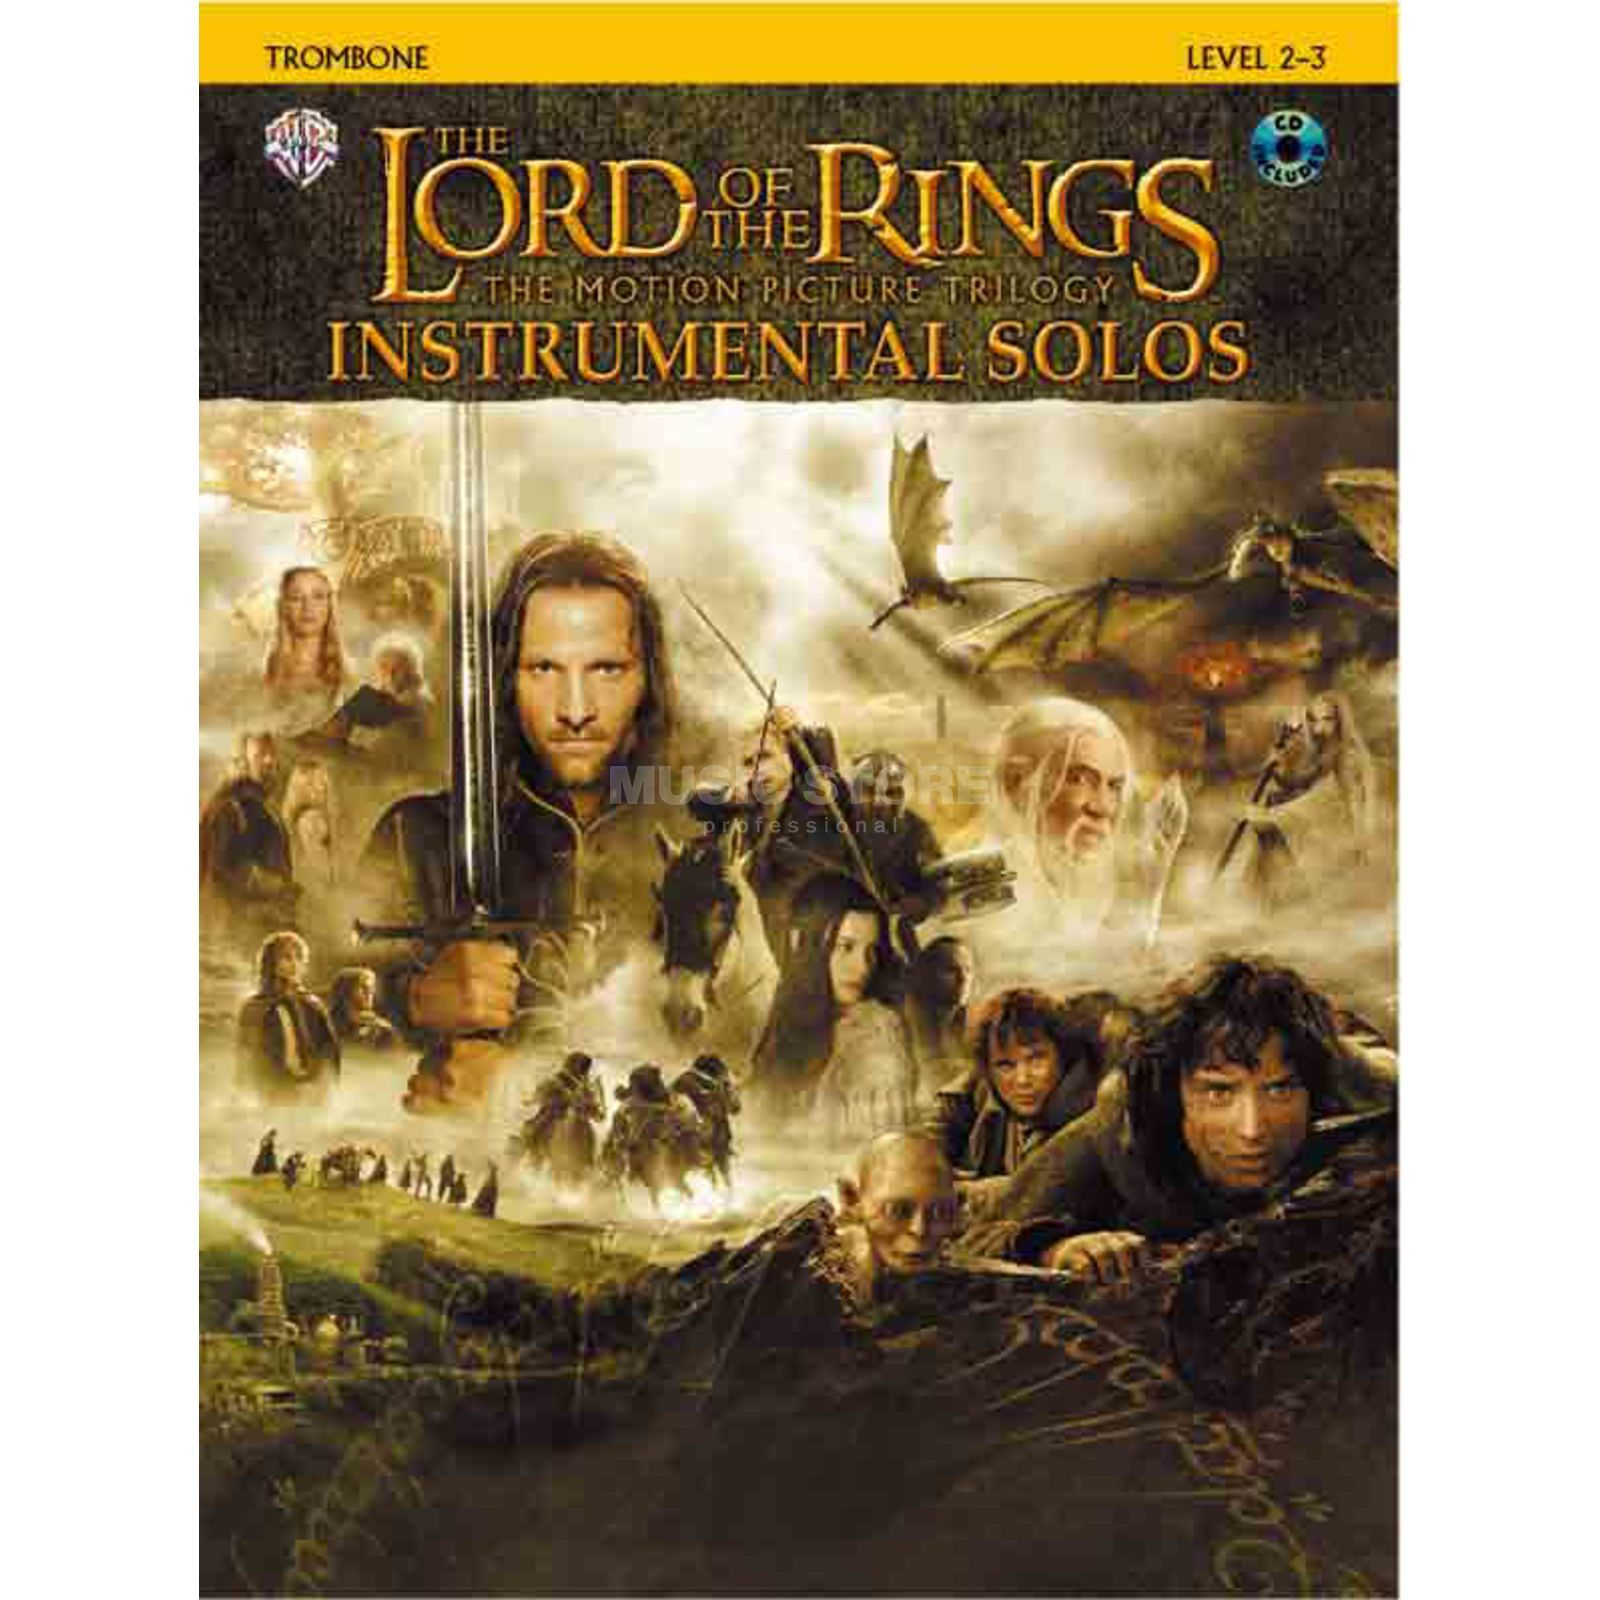 Alfred Music Lord of the Rings - Trombone Instrumental Solos, Book/CD Produktbillede